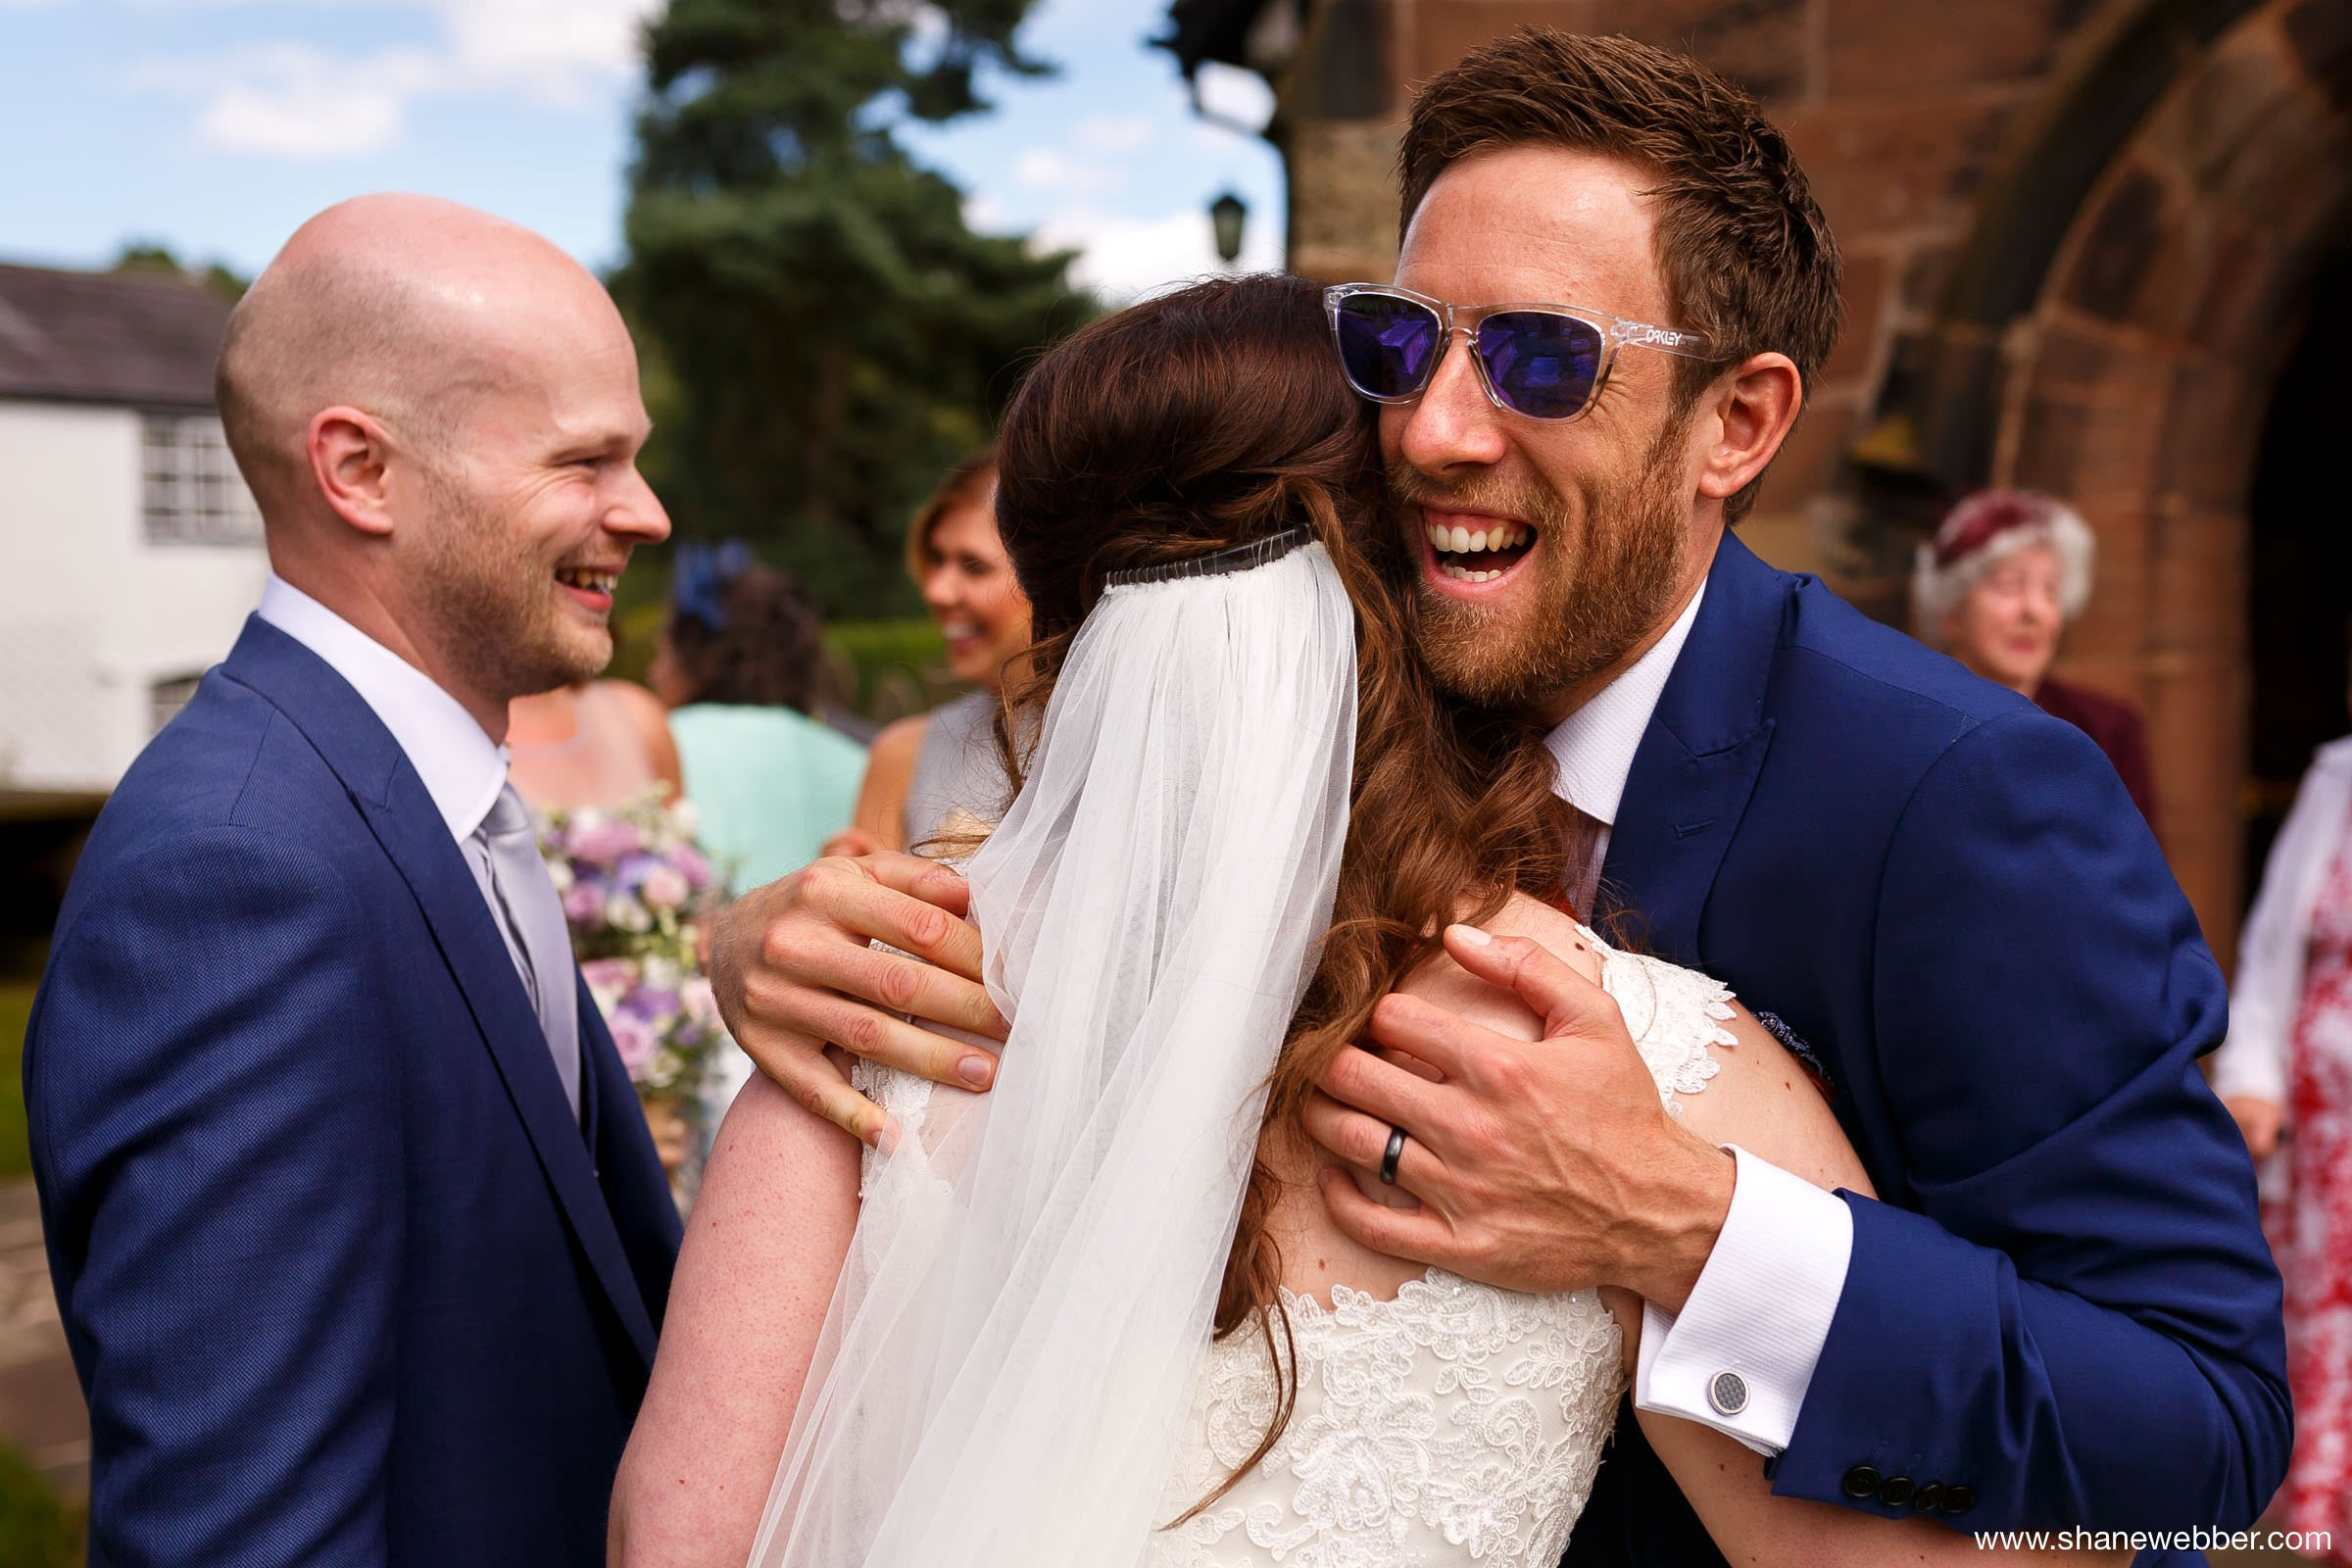 Colourful and natural wedding photography Manchester